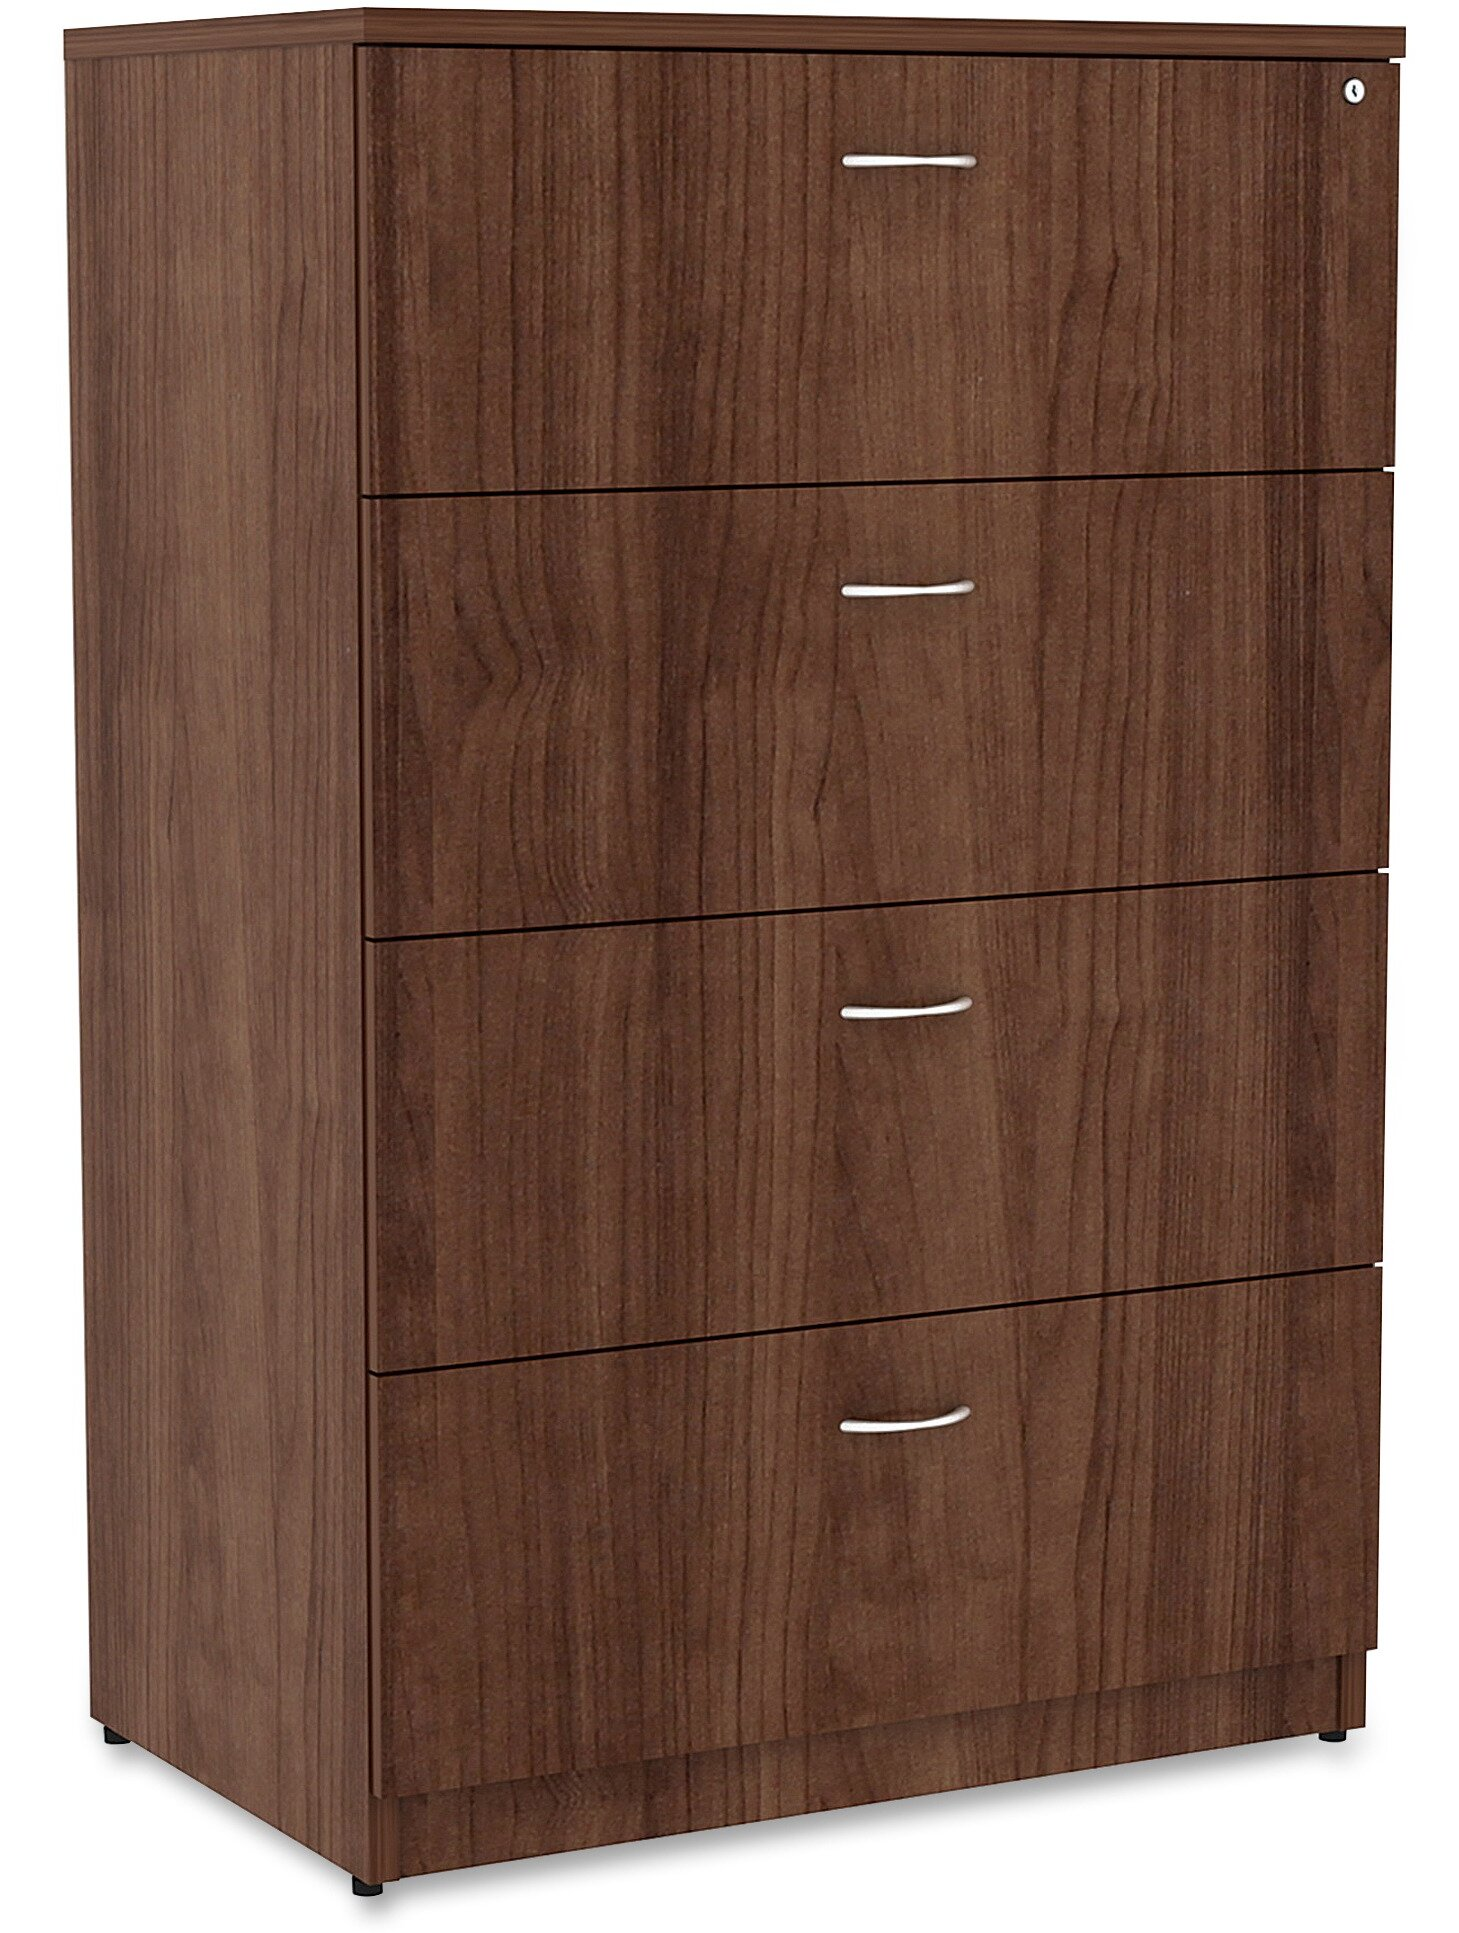 Essentials 4 Drawer Lateral Filing Cabinet